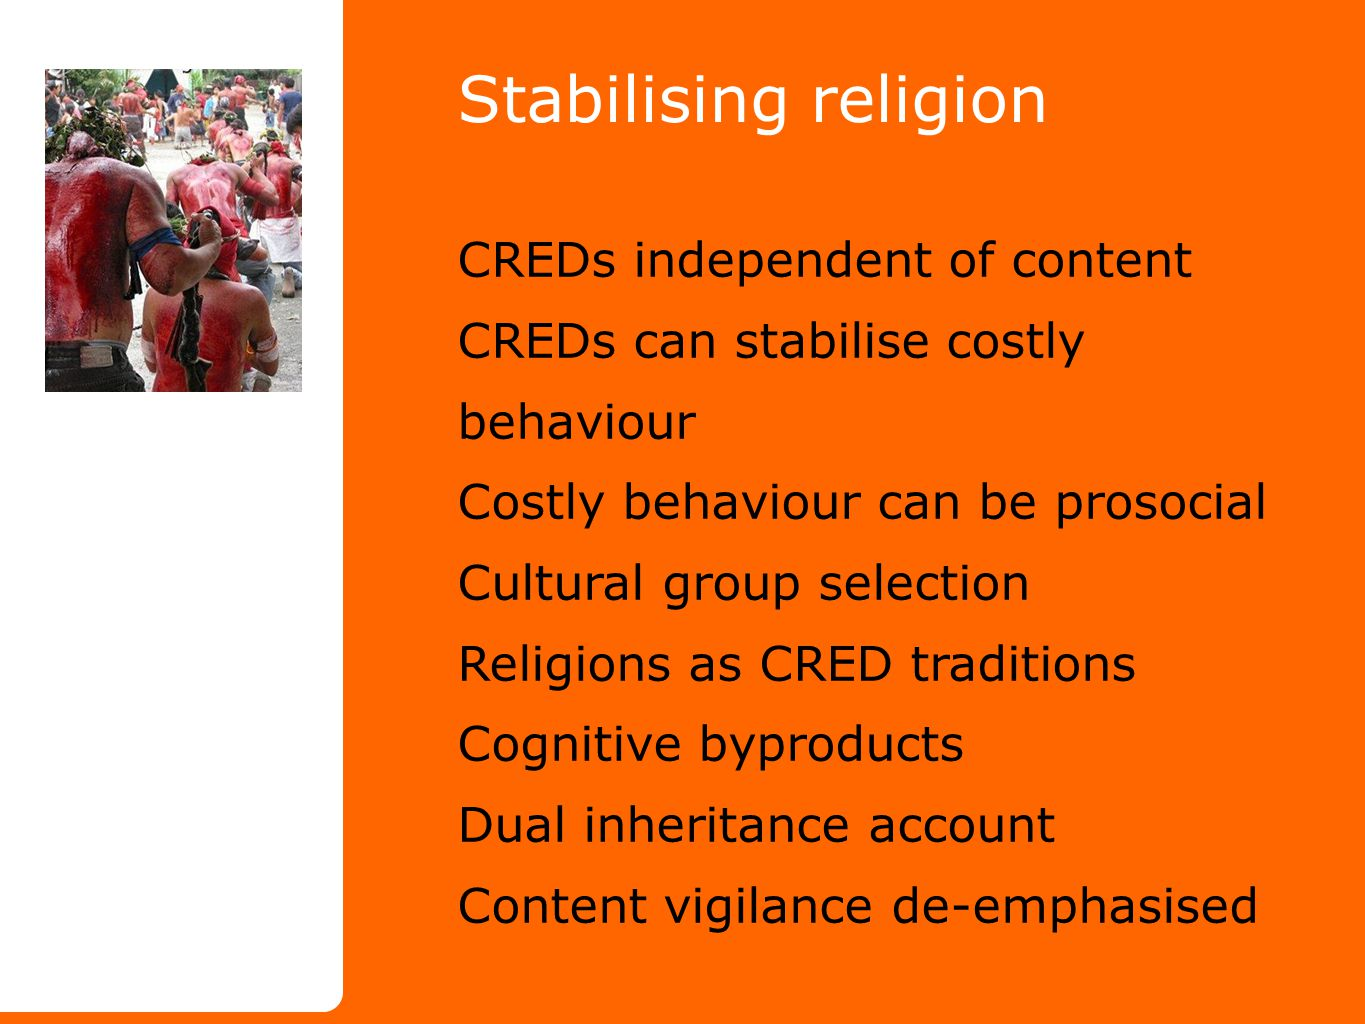 Stabilising religion CREDs independent of content CREDs can stabilise costly behaviour Costly behaviour can be prosocial Cultural group selection Religions as CRED traditions Cognitive byproducts Dual inheritance account Content vigilance de-emphasised